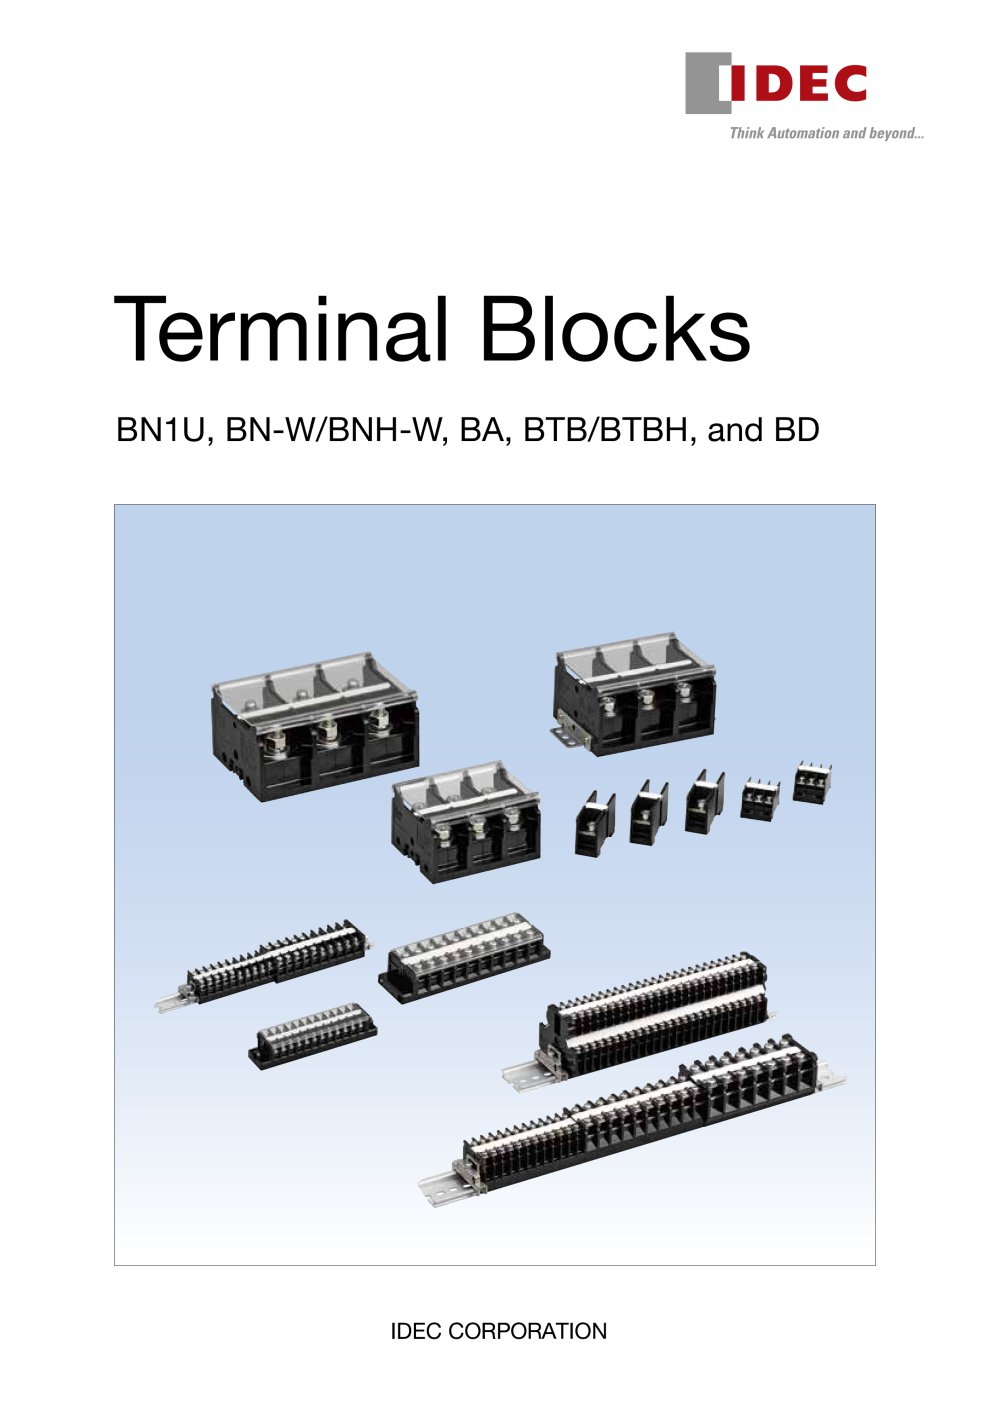 Ba Series Terminal Blocks Idec Usa Pdf Catalogue Technical Relay Wiring 1 52 Pages